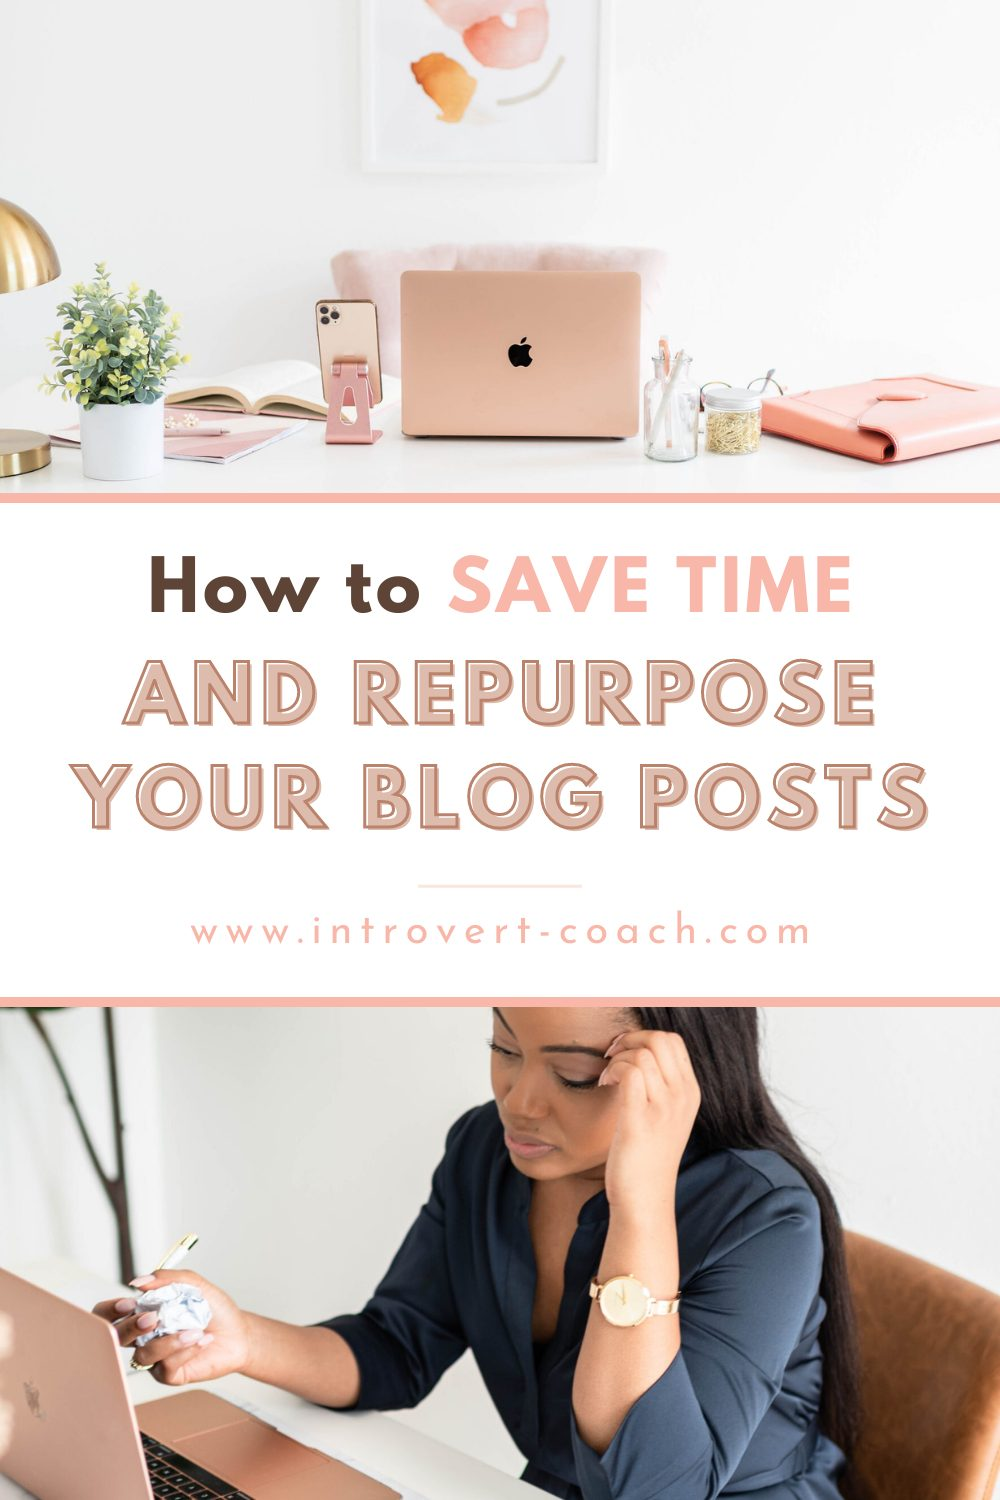 How to Save Time and Repurpose Your Blog Posts